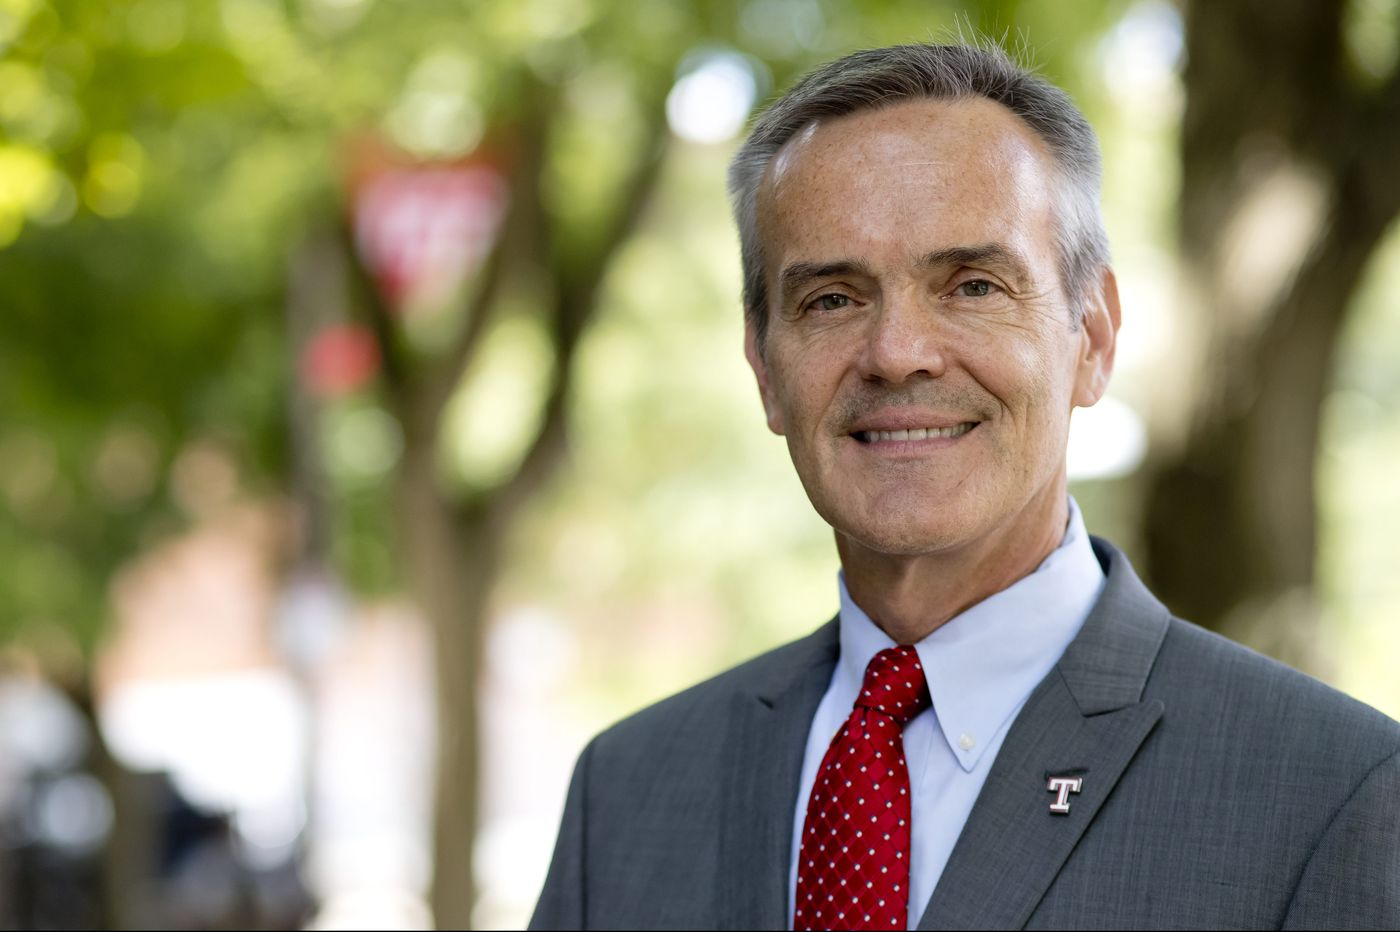 Interim dean named at Temple's business school